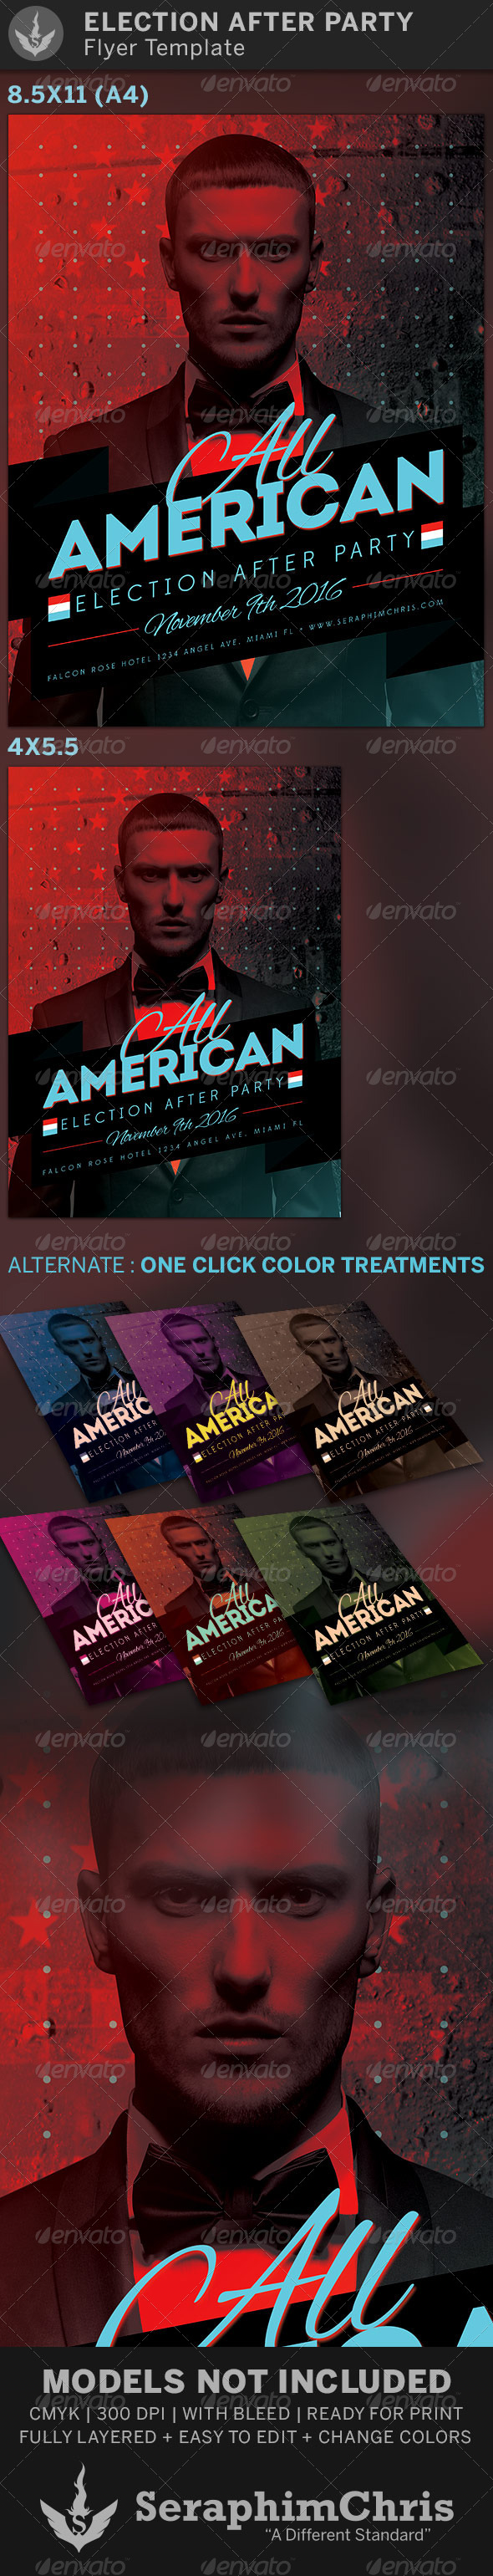 All American: Election After Party Flyer Template - Events Flyers